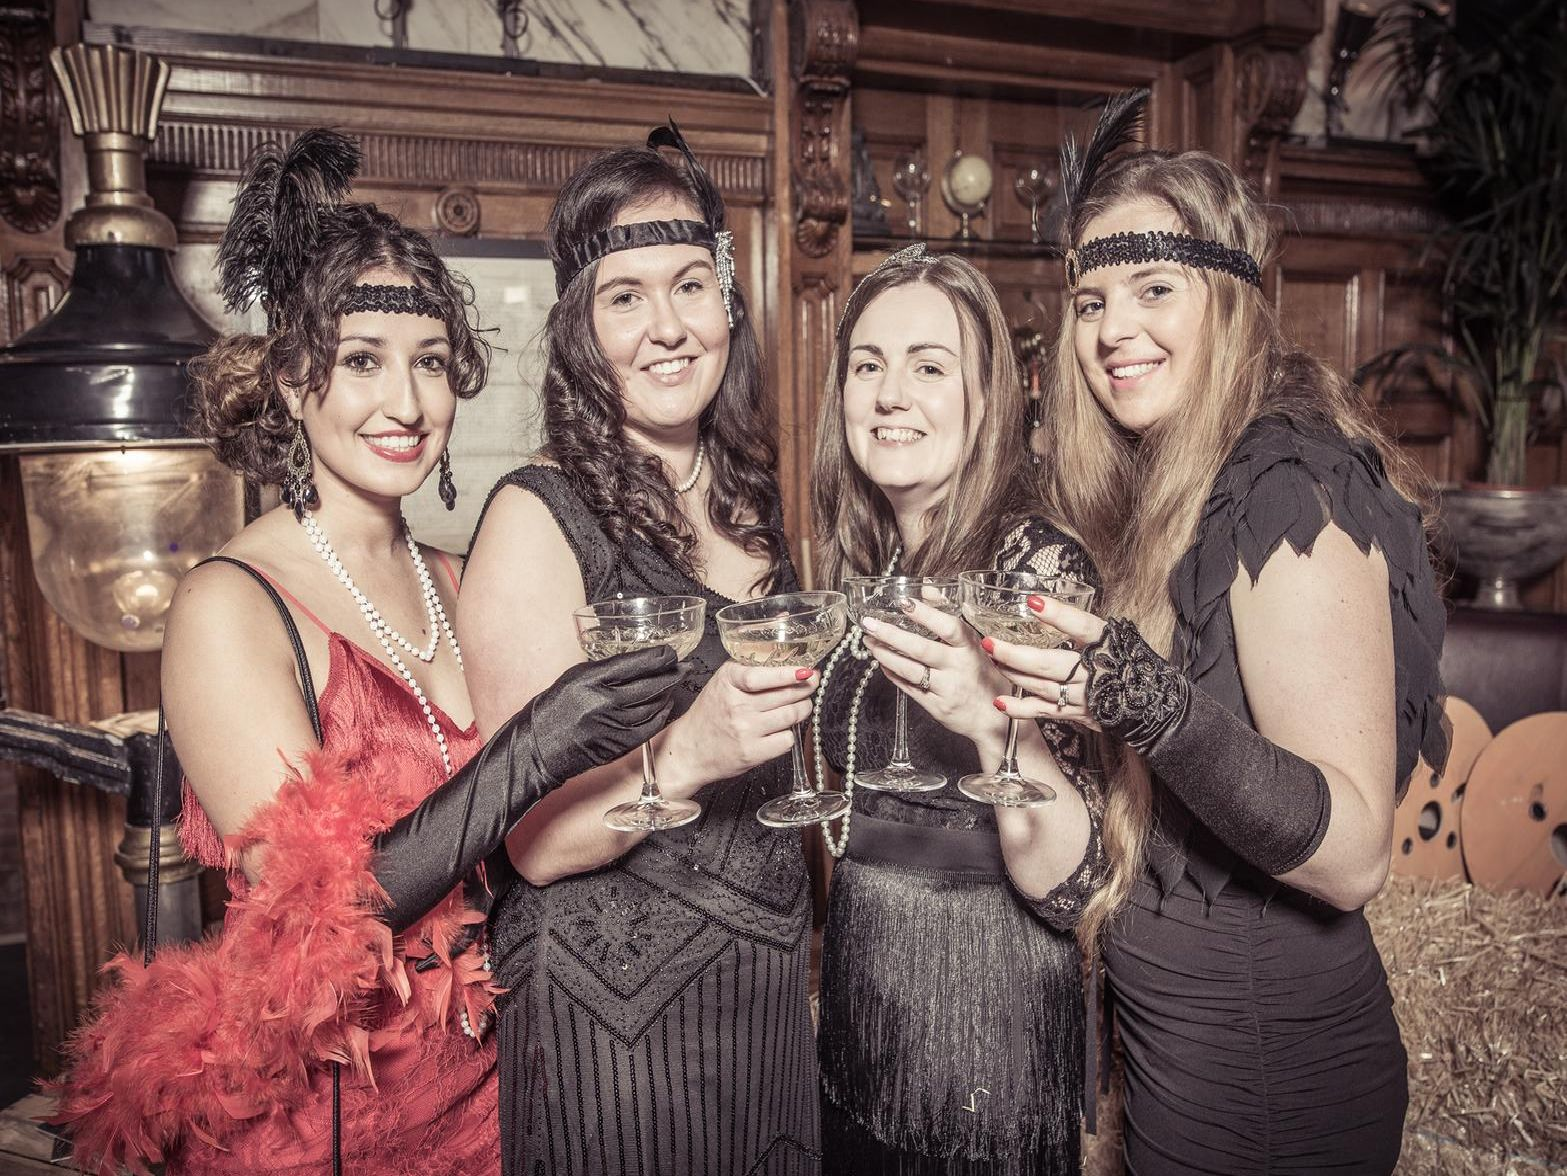 +24 Marketing's Peaky Blinders themed charity event was a roaring success. Photos: Andy Ford.